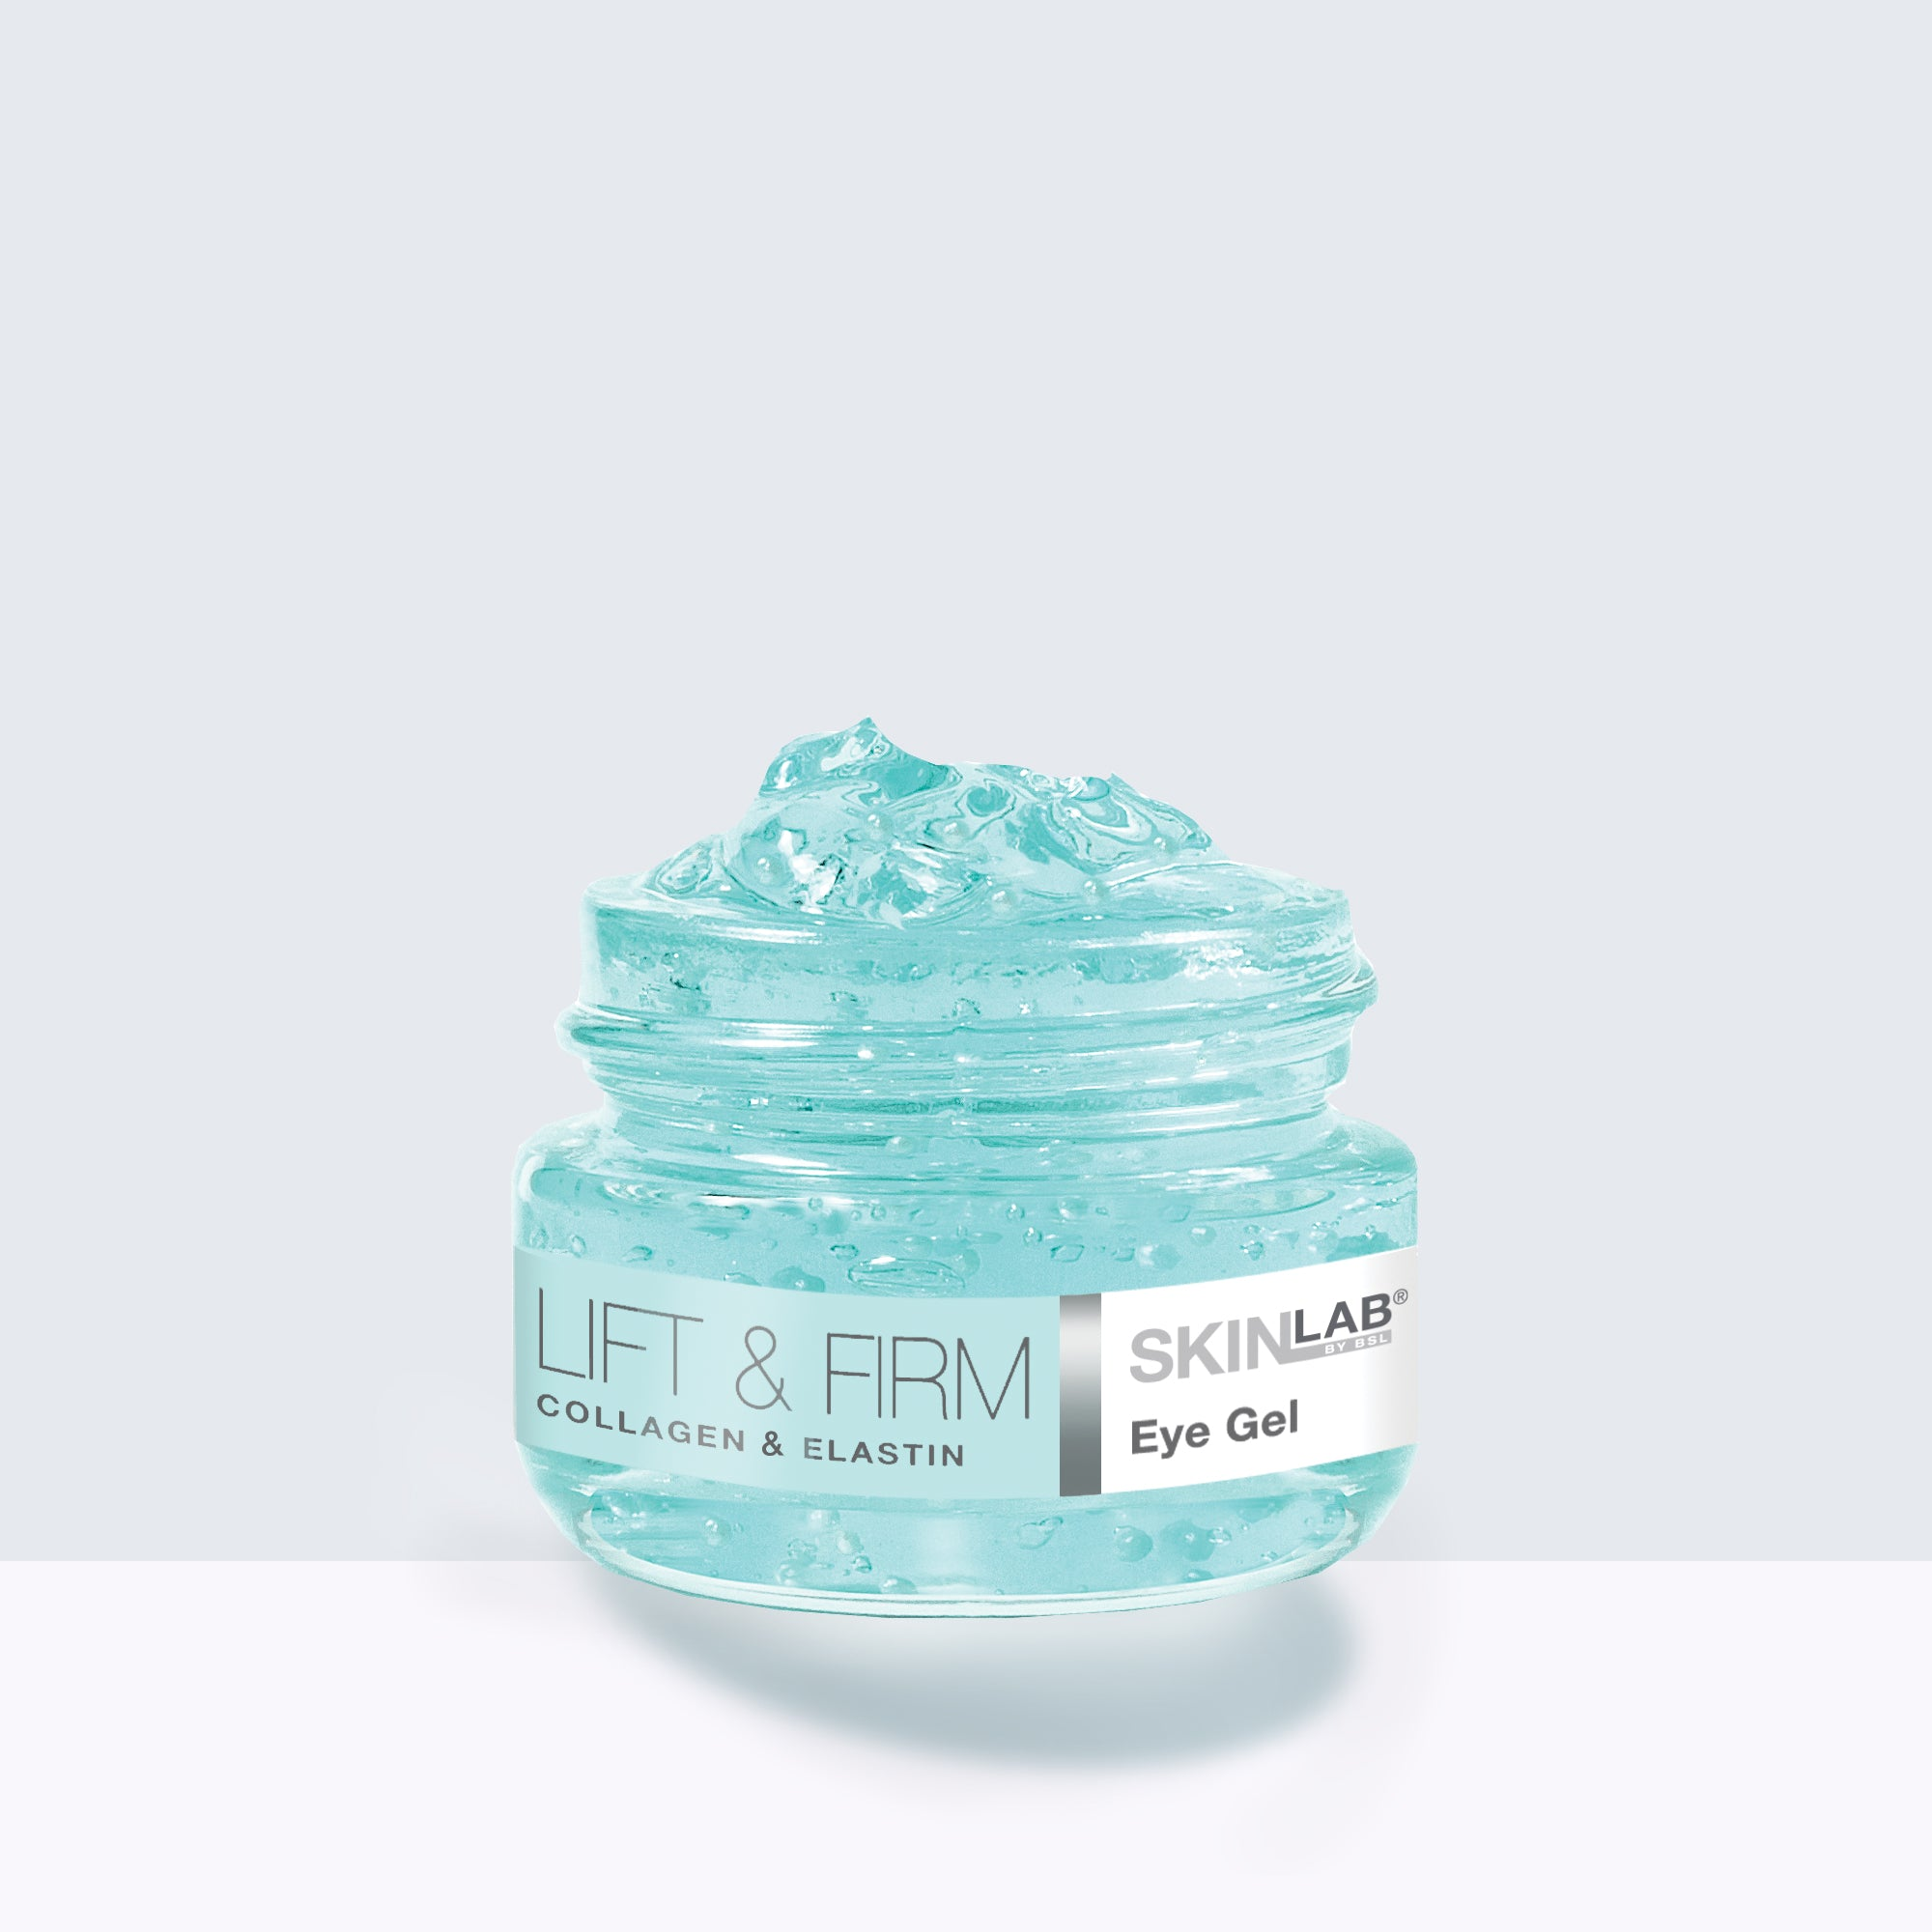 Lift & Firm Eye Gel